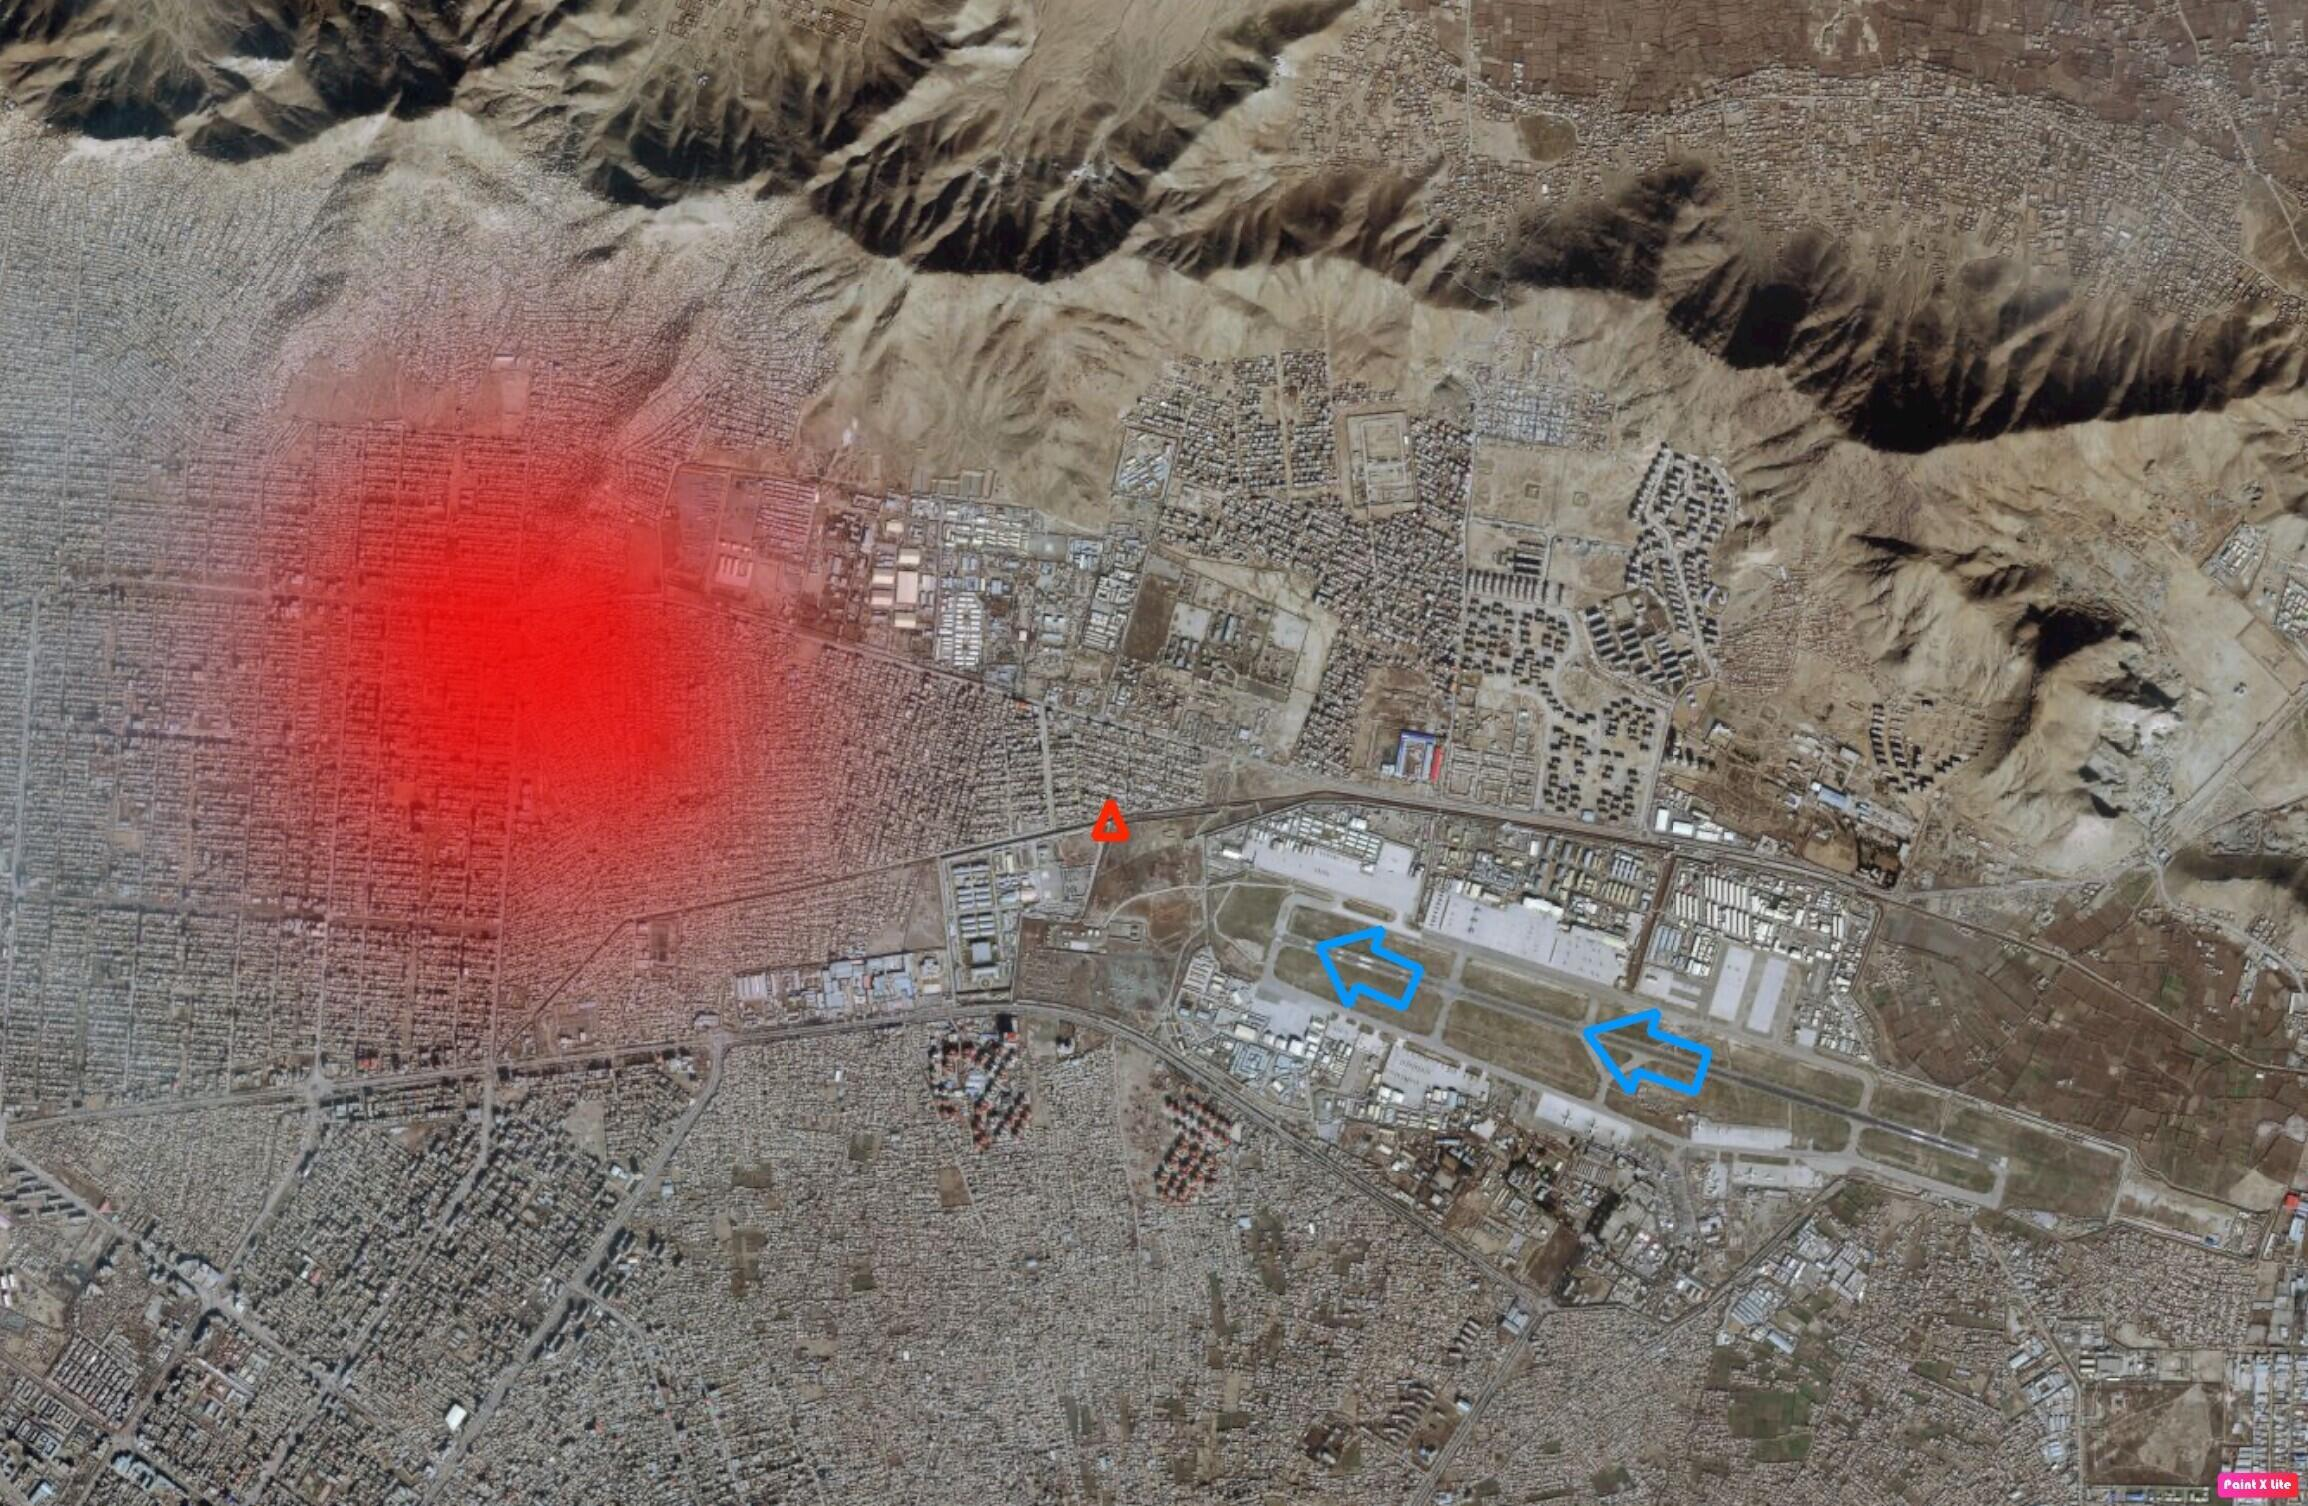 In this satellite image of the area surrounding Kabul airport, the blue arrows show the direction the US military plane took off in. The red triangle shows the location where the body of the first victim was found, and the area in red shows the approximate location where another victim's body was found on a rooftop.